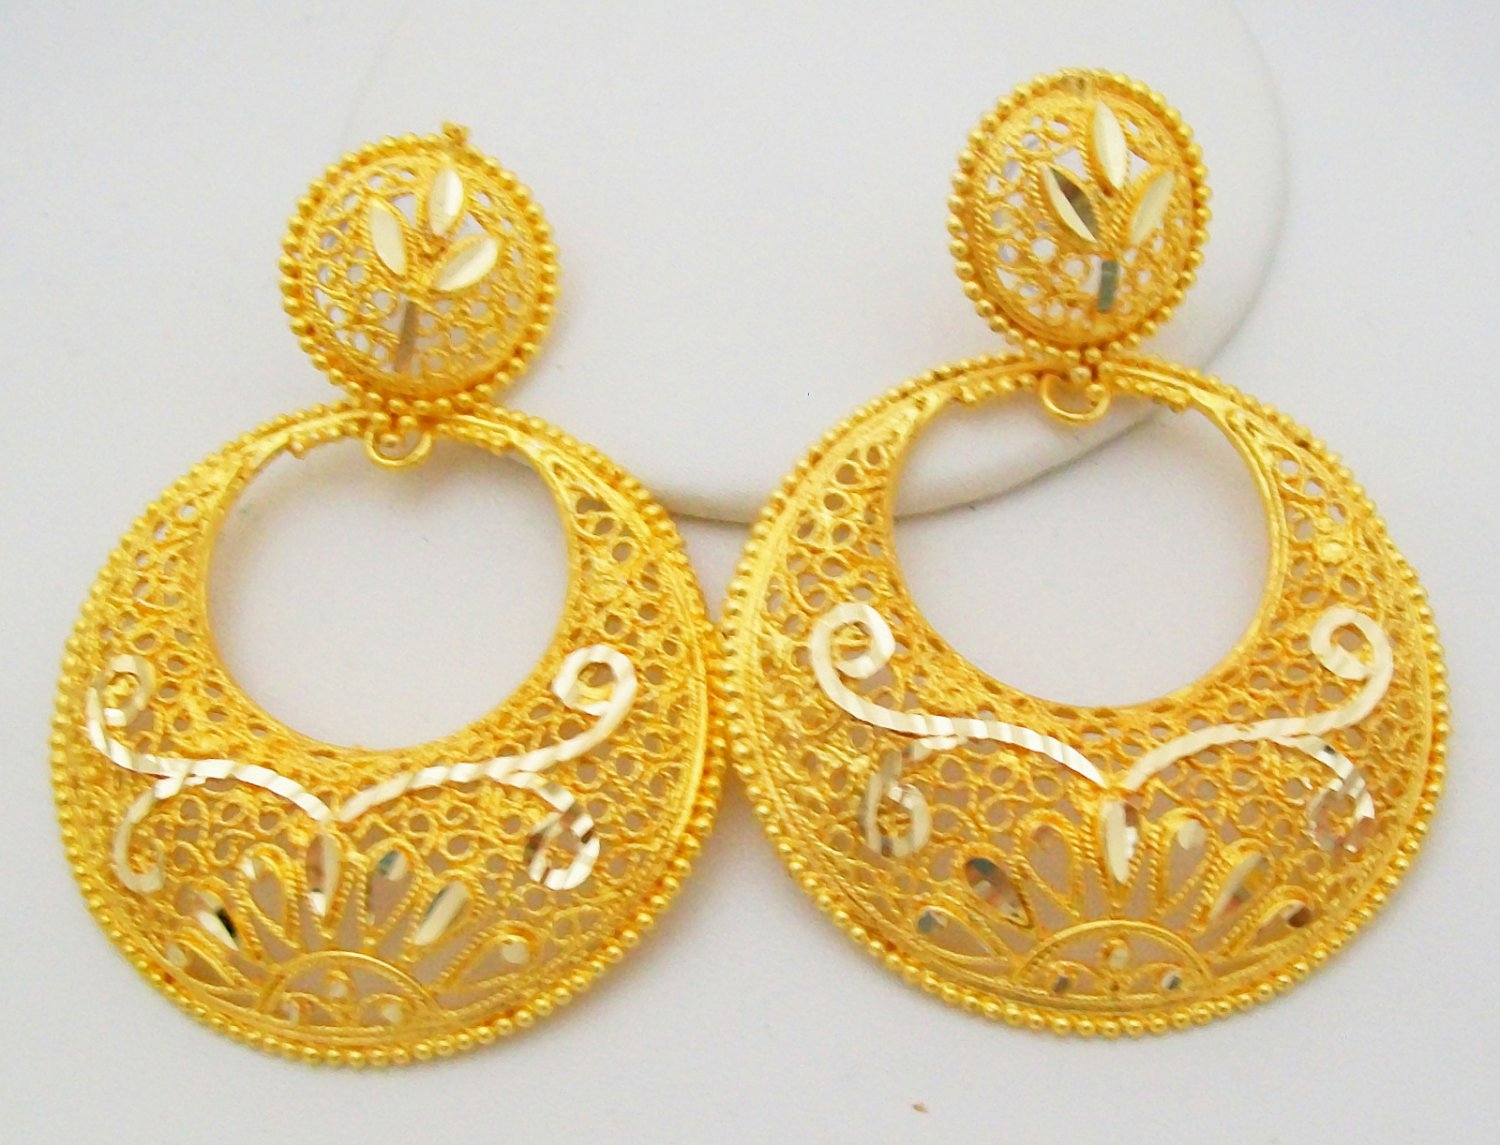 earrings shop side rosanne designers earring gold tangier august pugliese jewelery